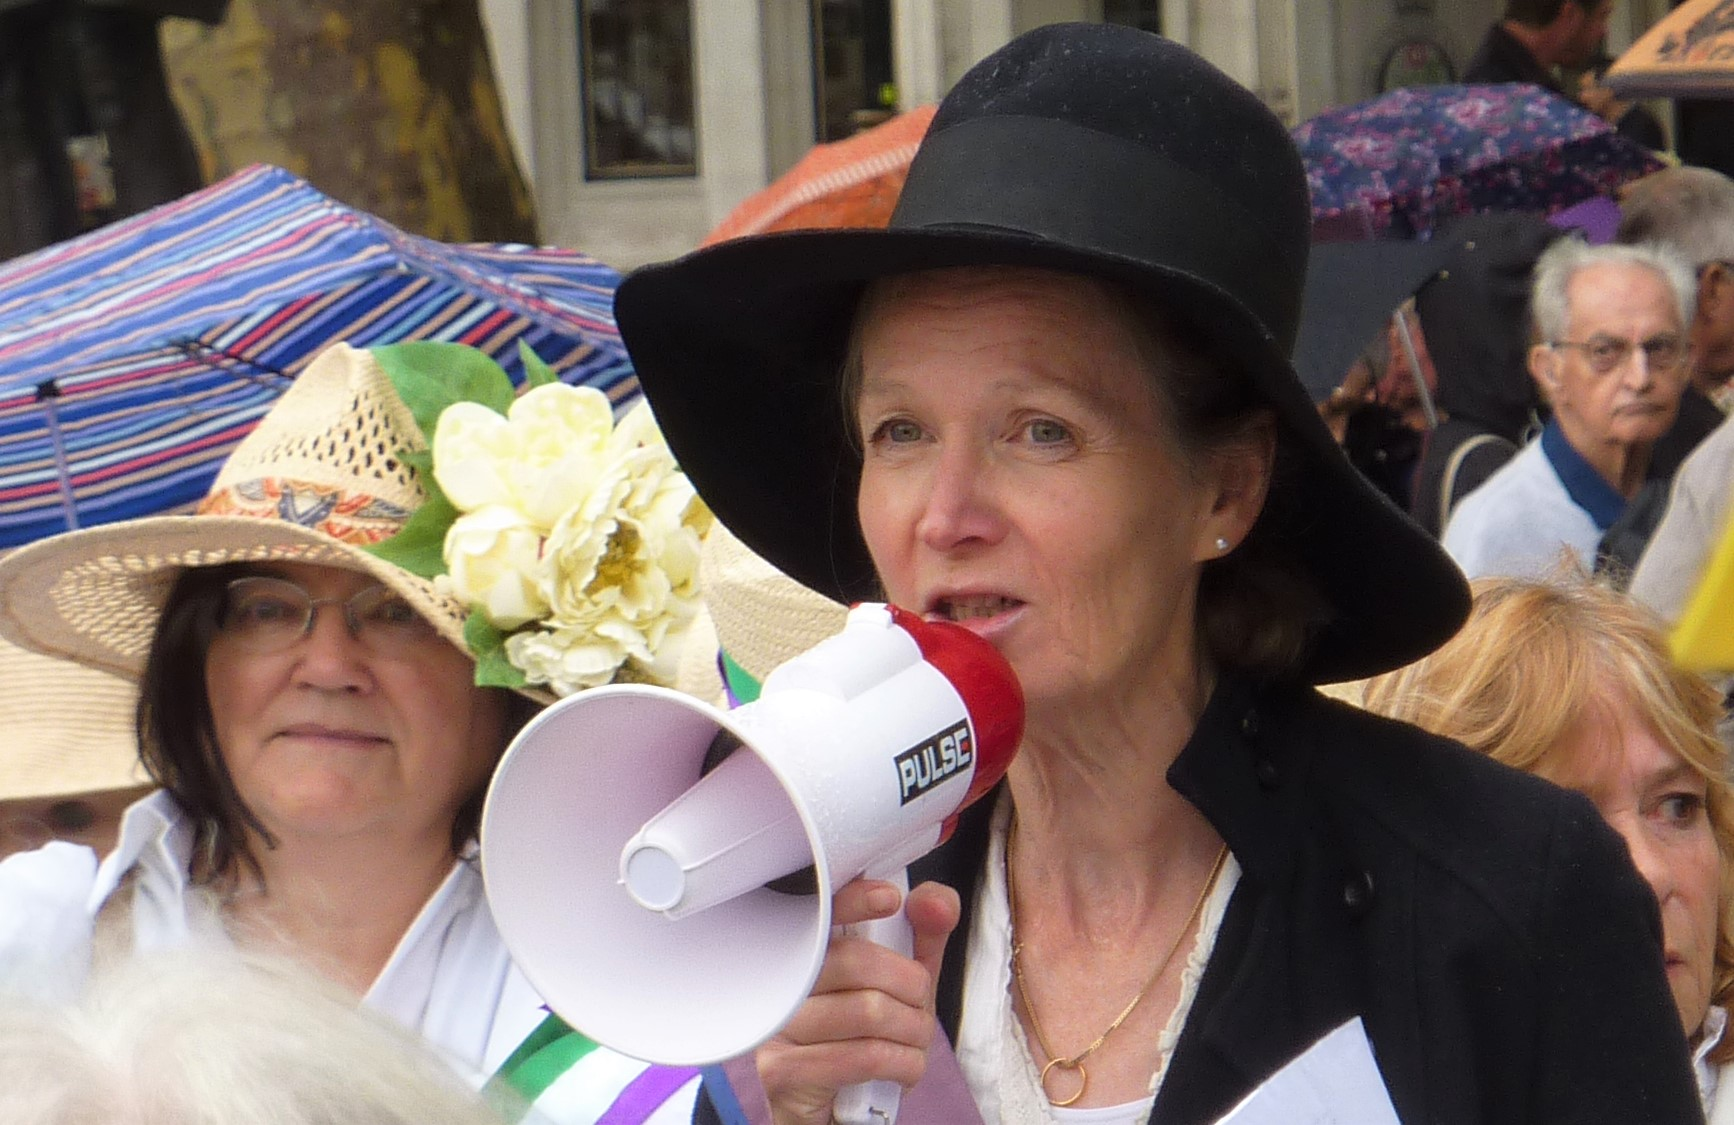 Vicki Elcoate addresses the 100 Women rally, Parliament Square. Photo: DrillOrDrop, 12/9/2018